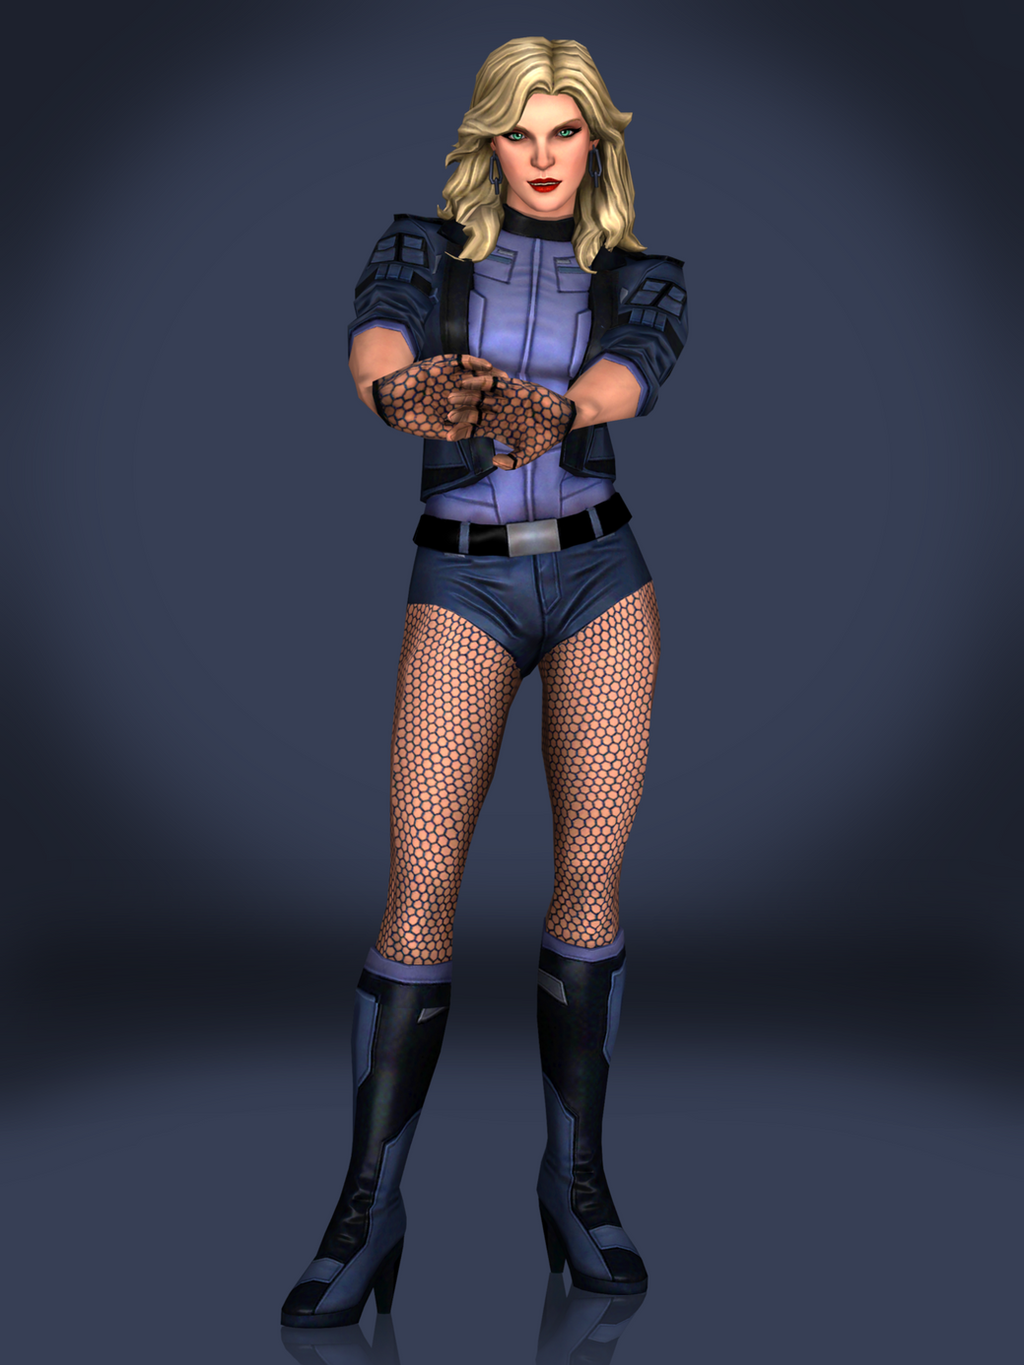 Black Canary By Sticklove On Deviantart